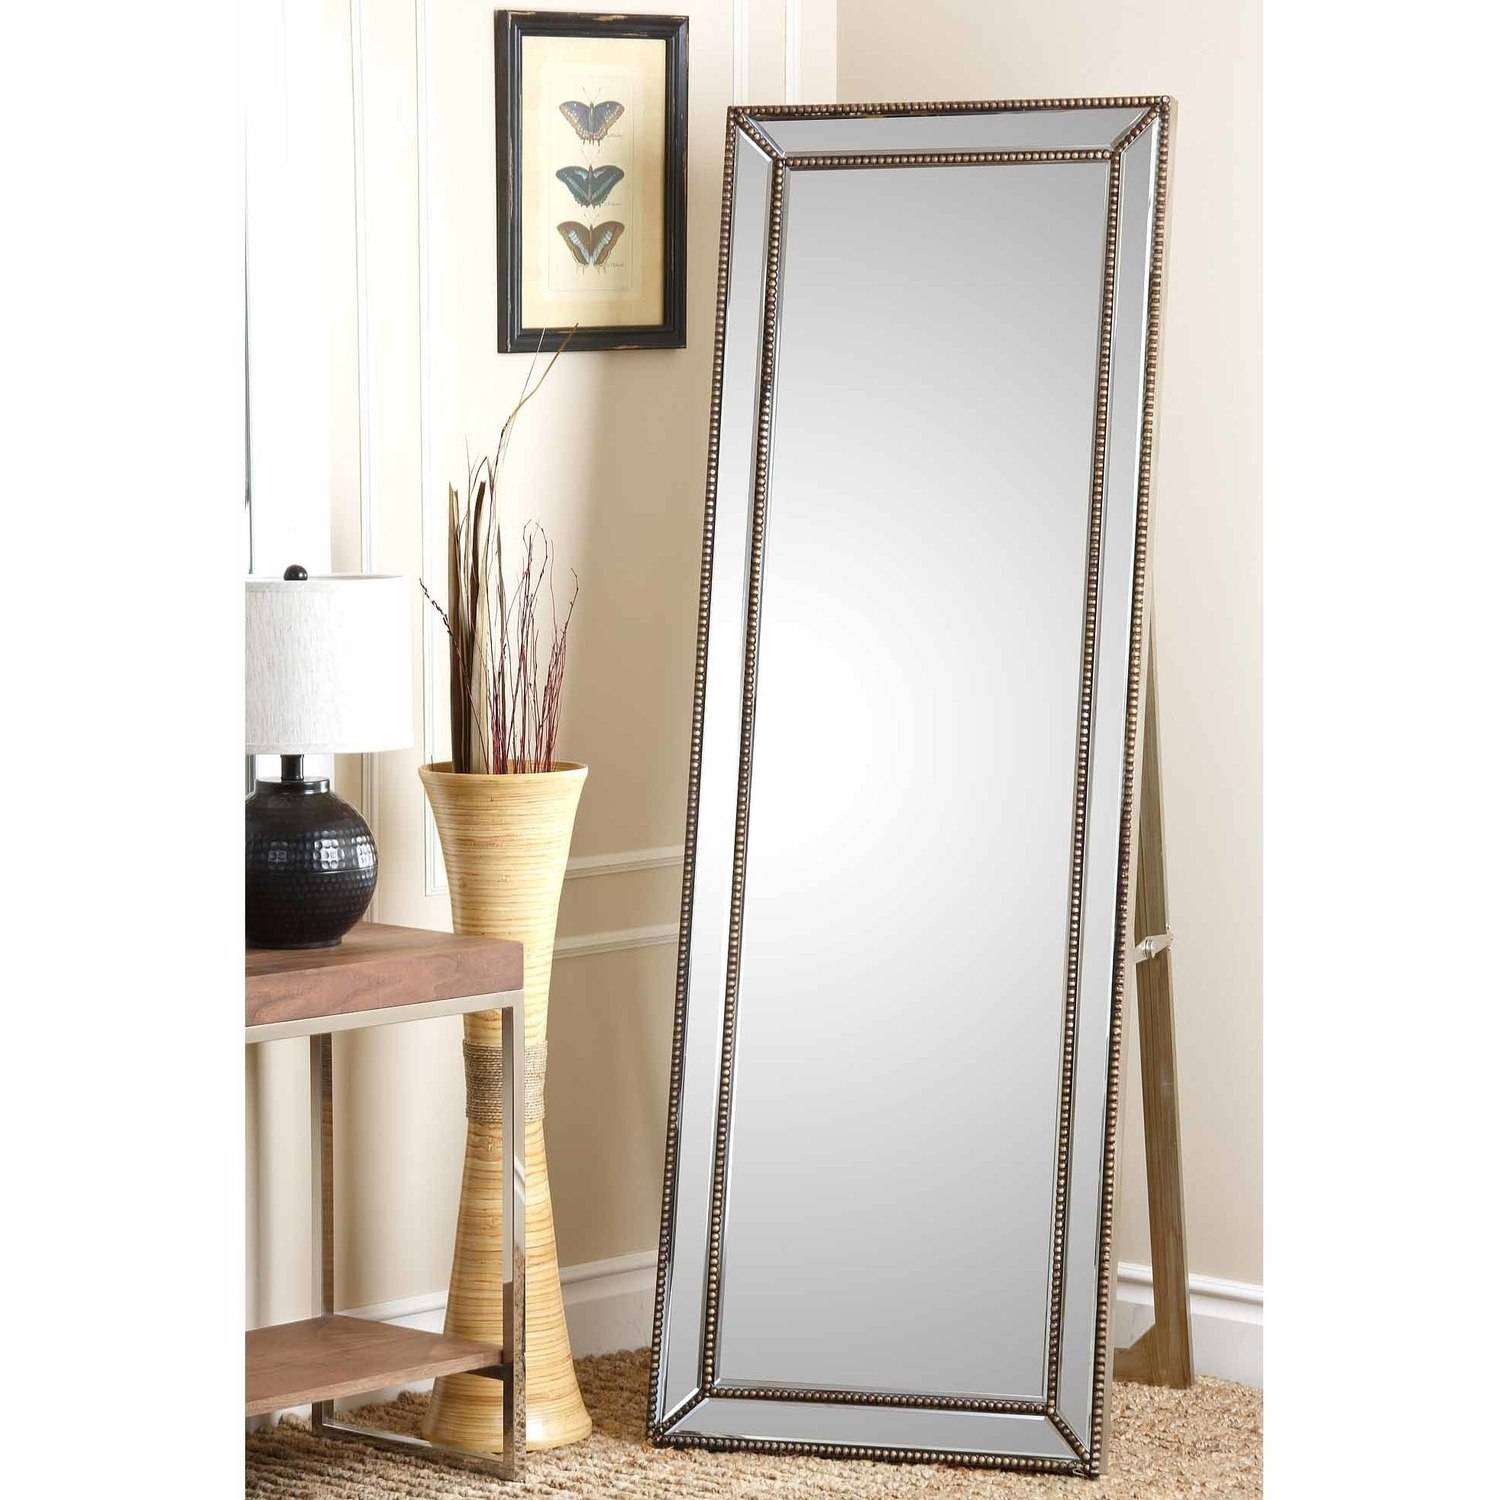 Devon and Claire Berkshire Nailhead-Trim Floor Mirror by Devon & Claire